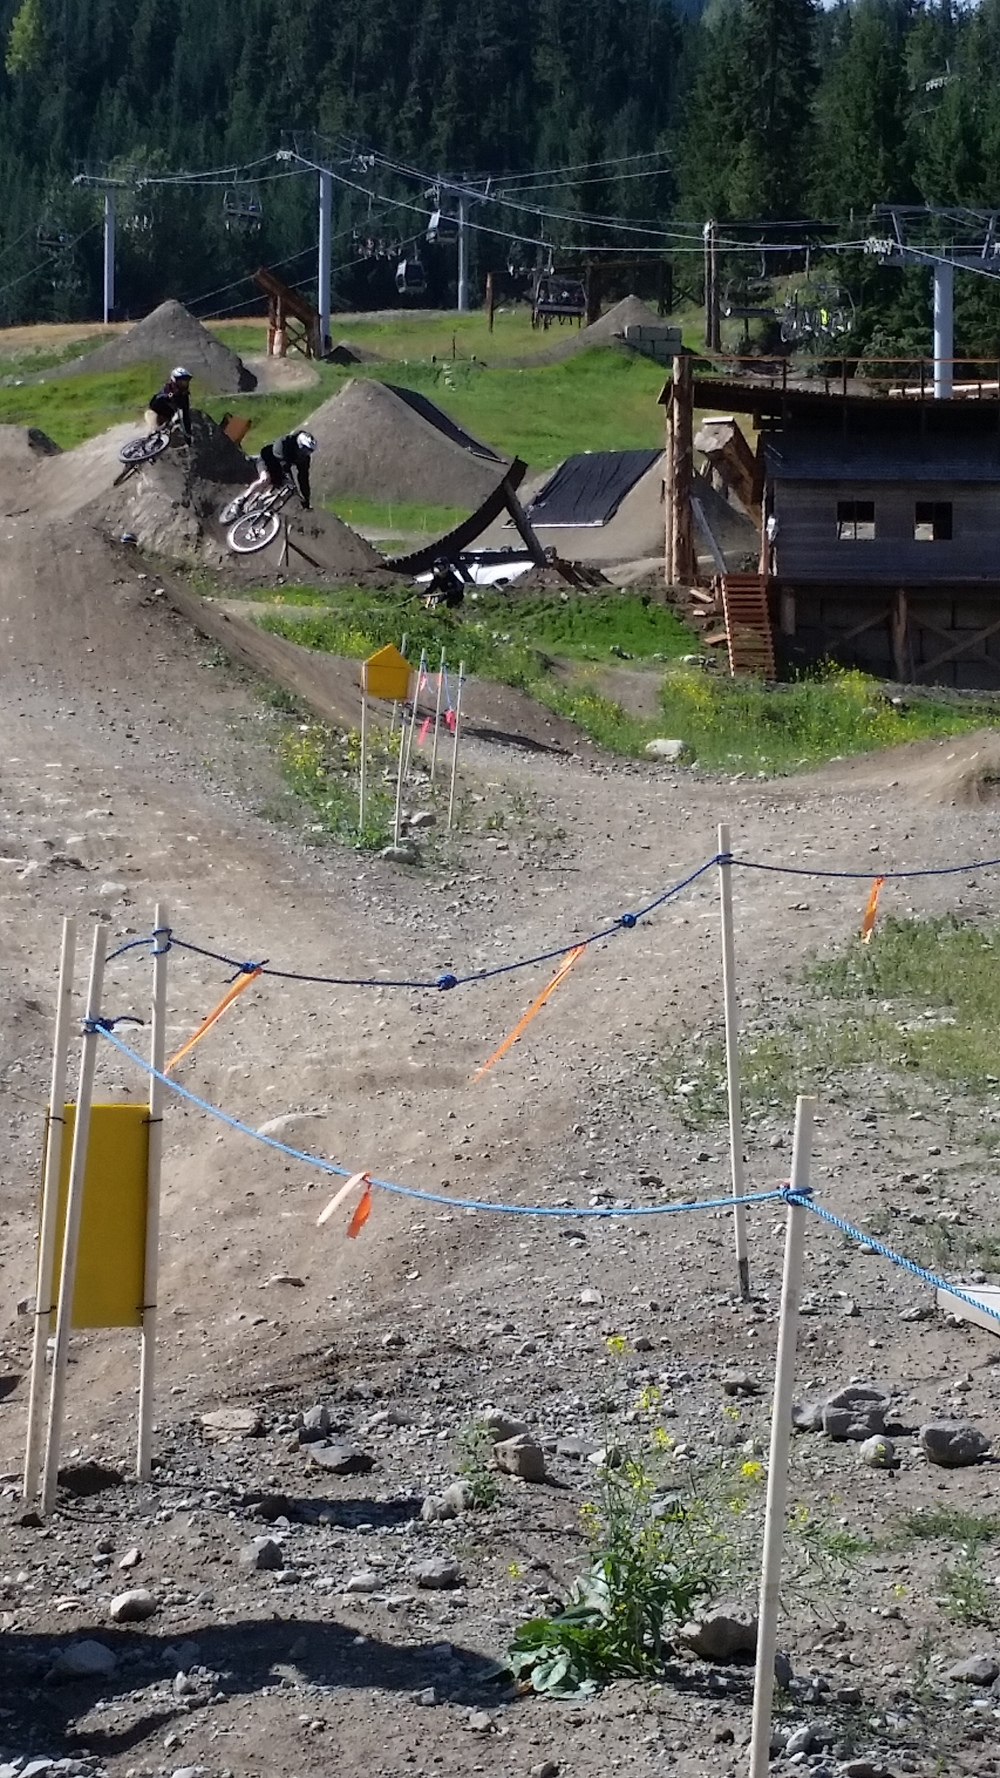 The downhill mountain bike scene in Whistler is amazing.